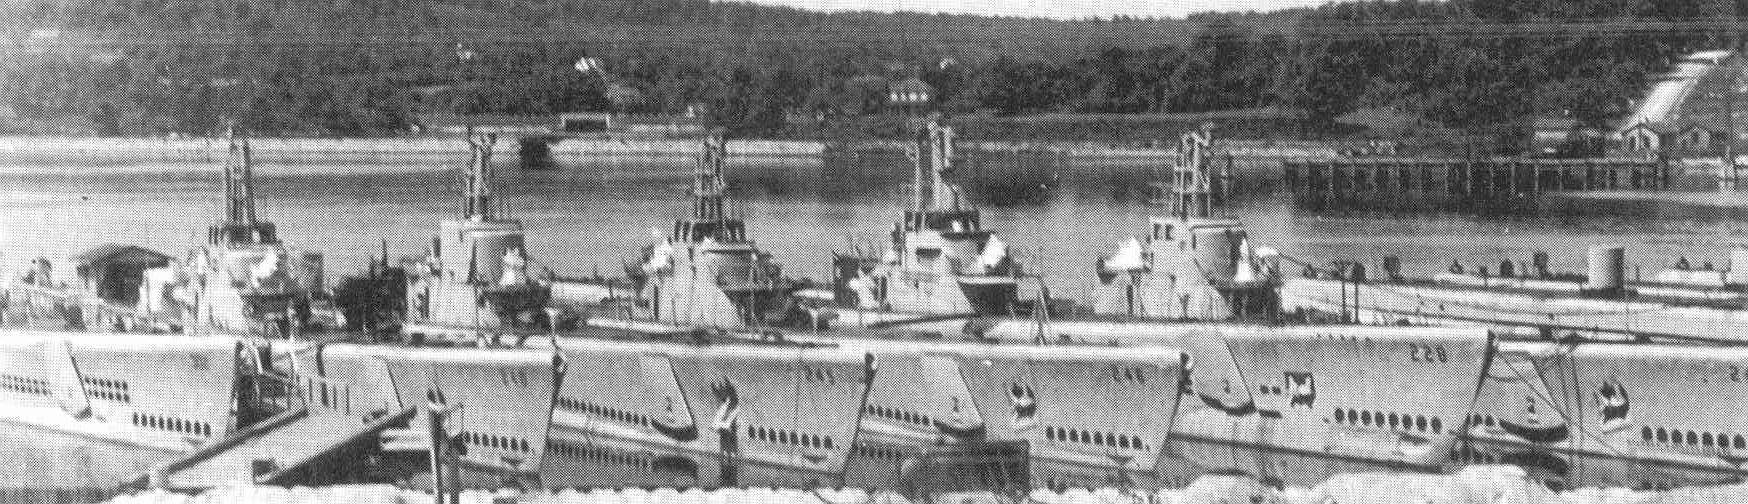 Decommissioned submarines circa 1947